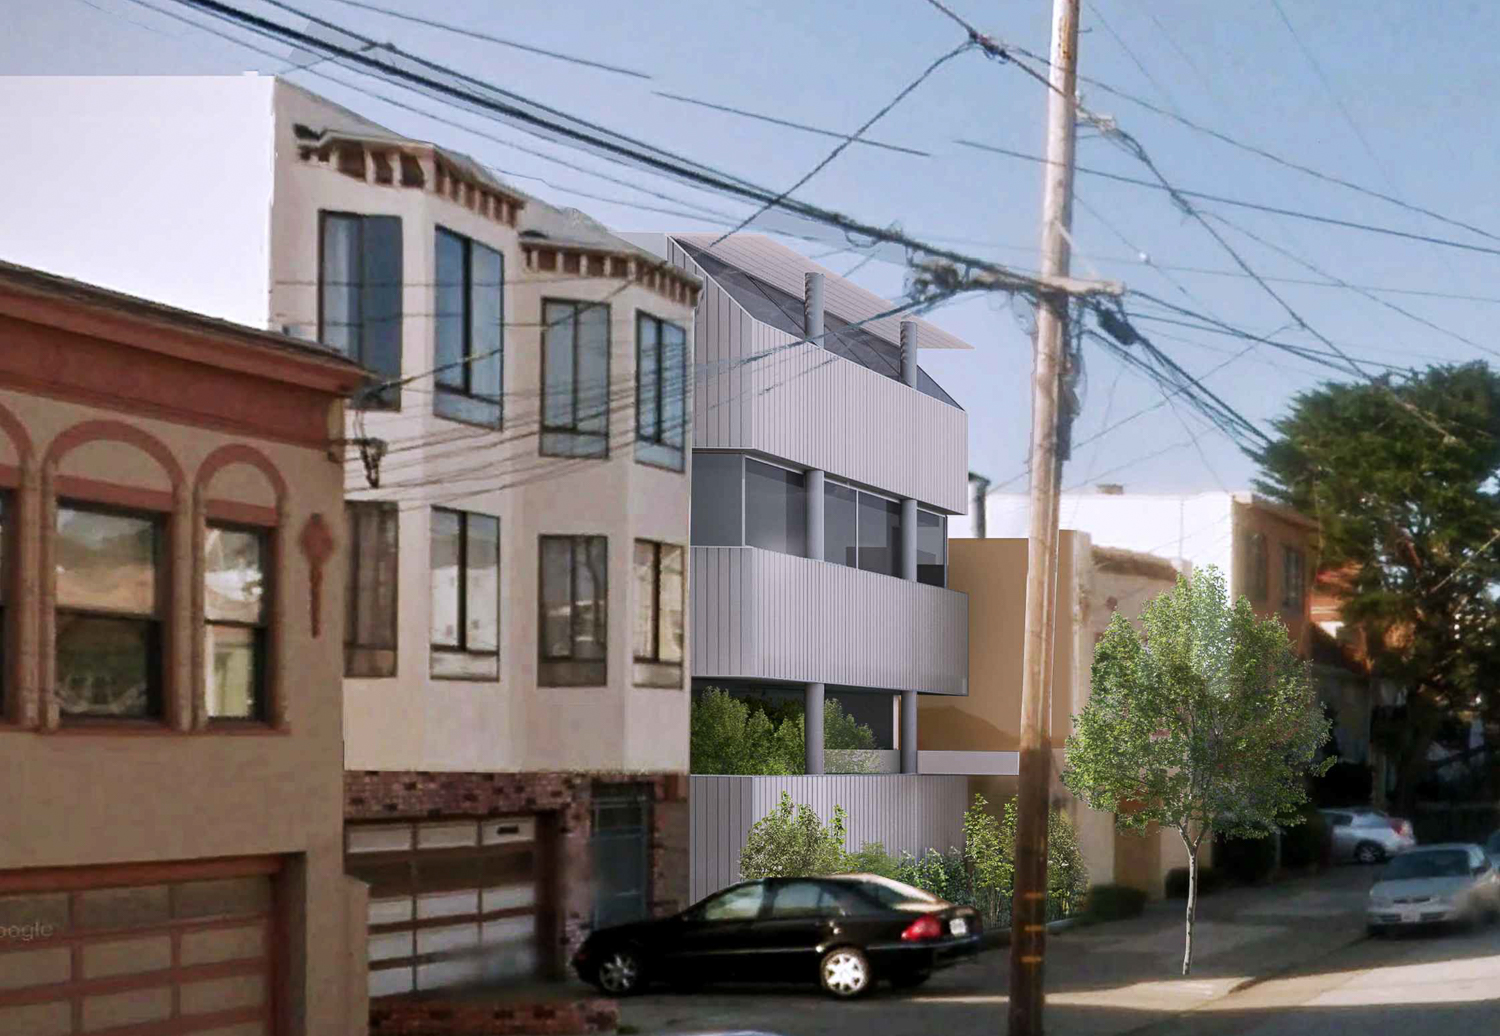 1271 46th Avenue from 46th Ave, rendering by Stanley Saitowitz Architects